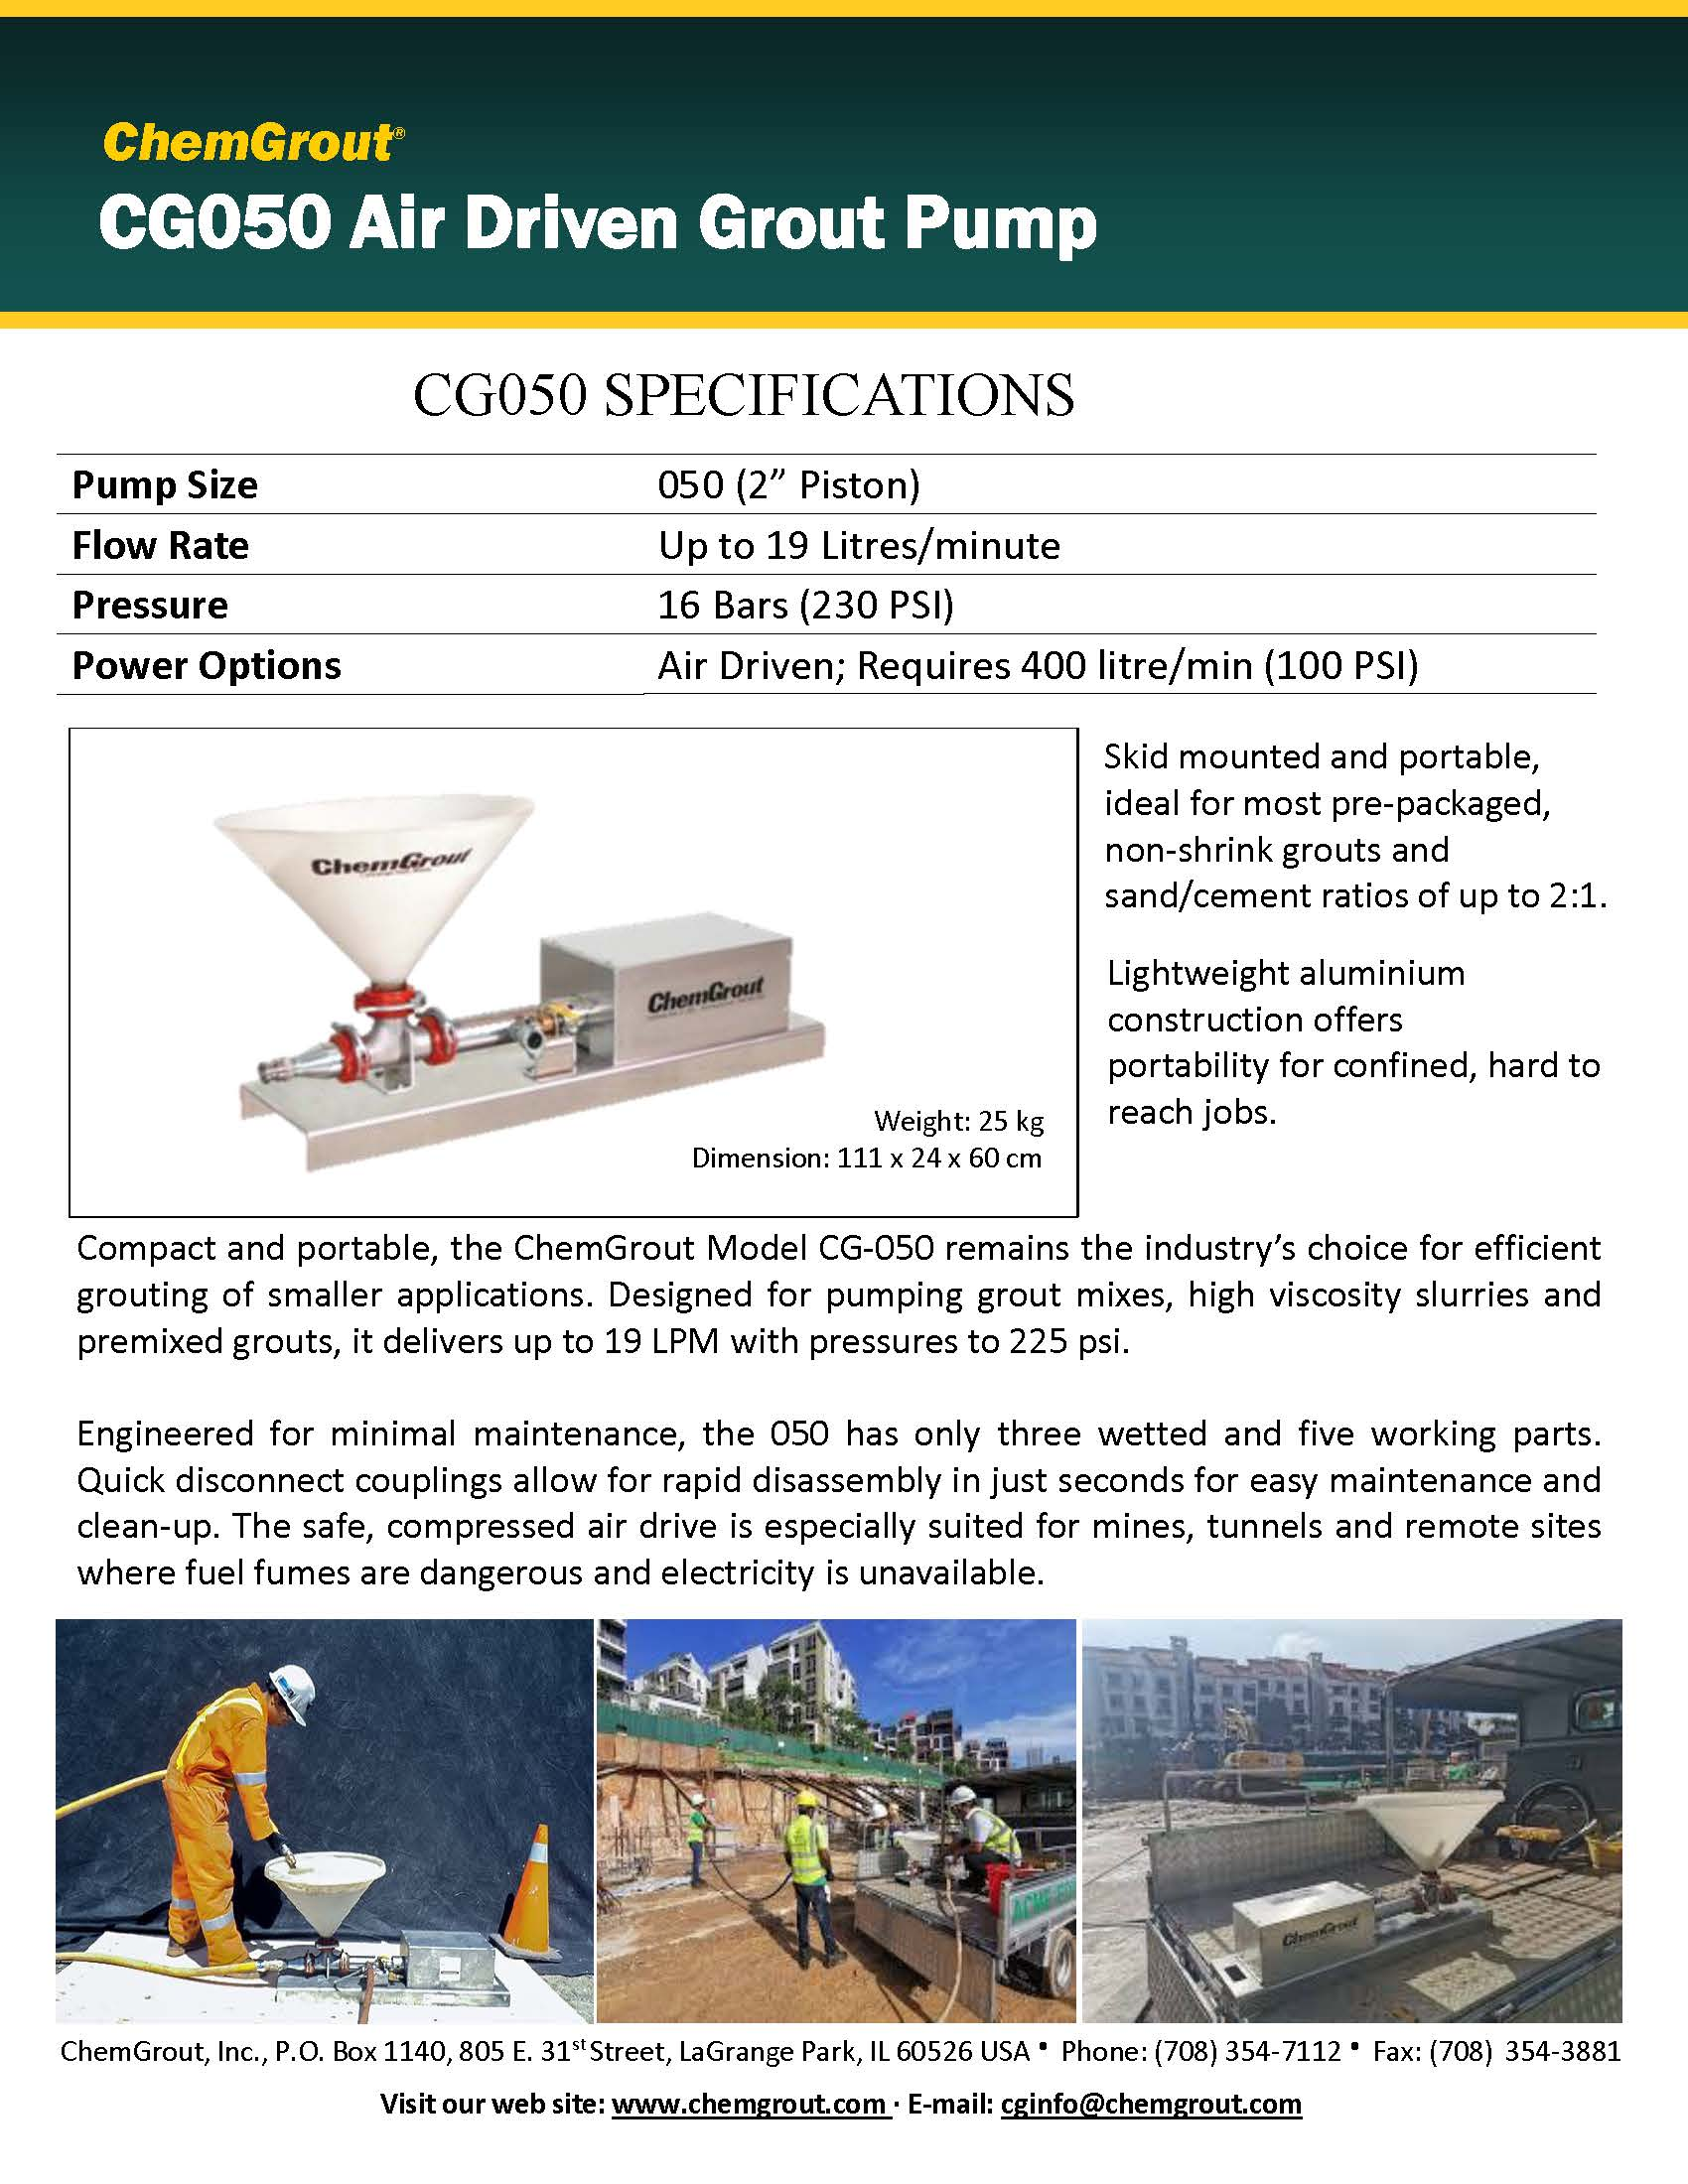 ChemGrout CG050 Mini Air Powered Grout Pump Brochure